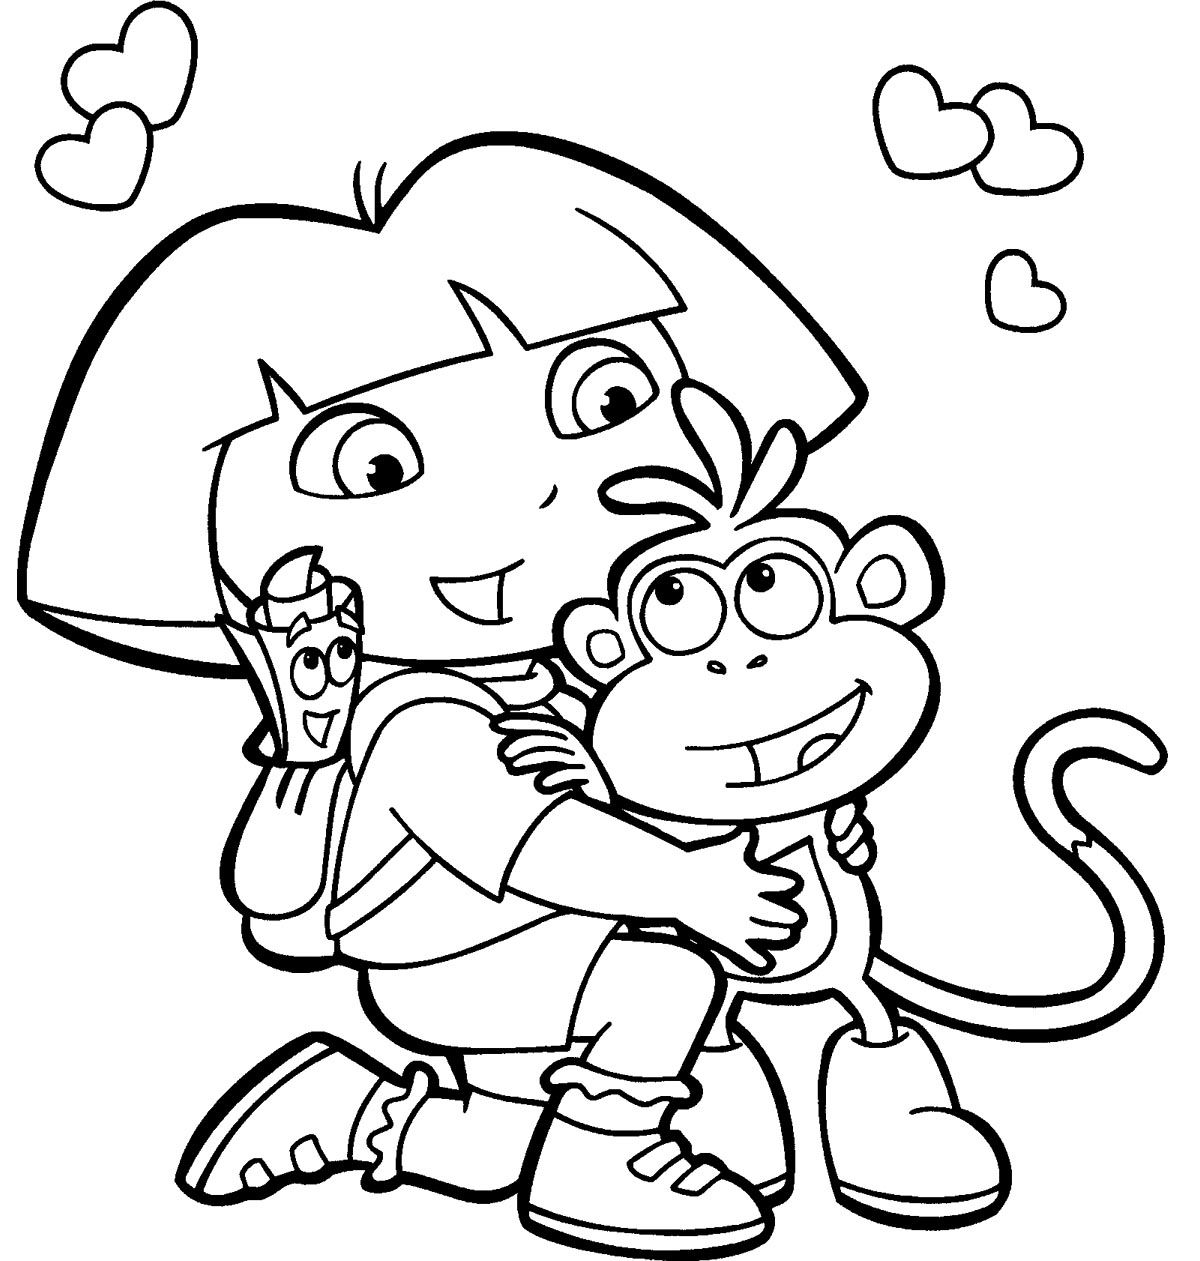 dora coloring pages #dora coloring pages #coloringpages ...